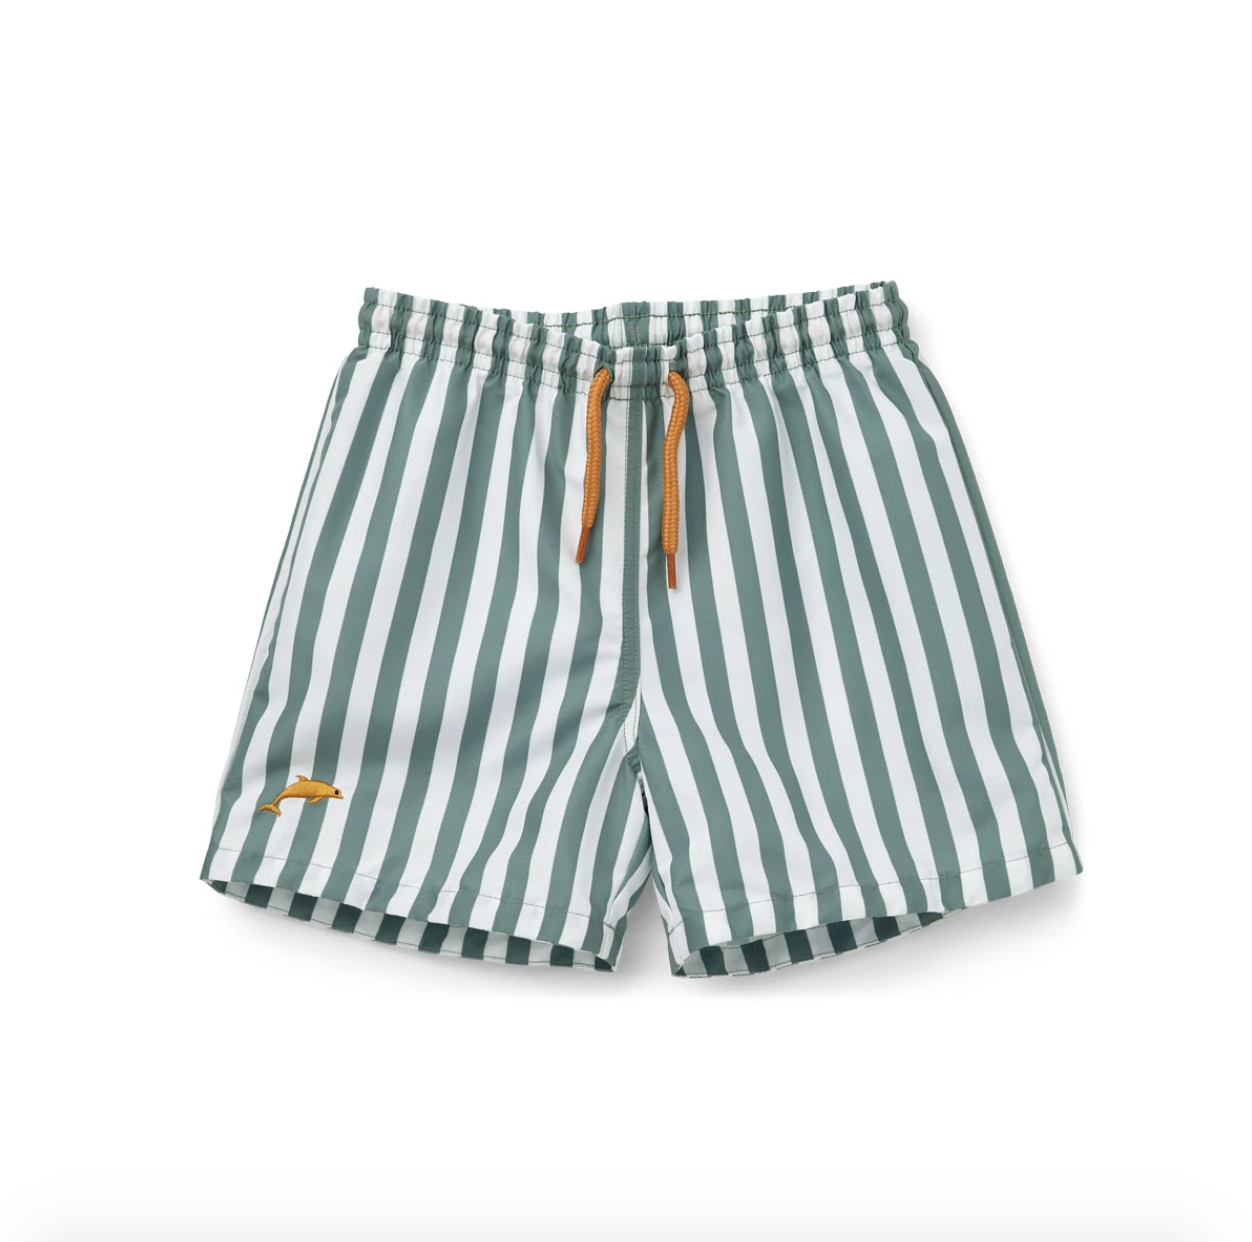 Green and white vertical striped boys swim trunks with a small embroidered dolphin in the corner of the leg